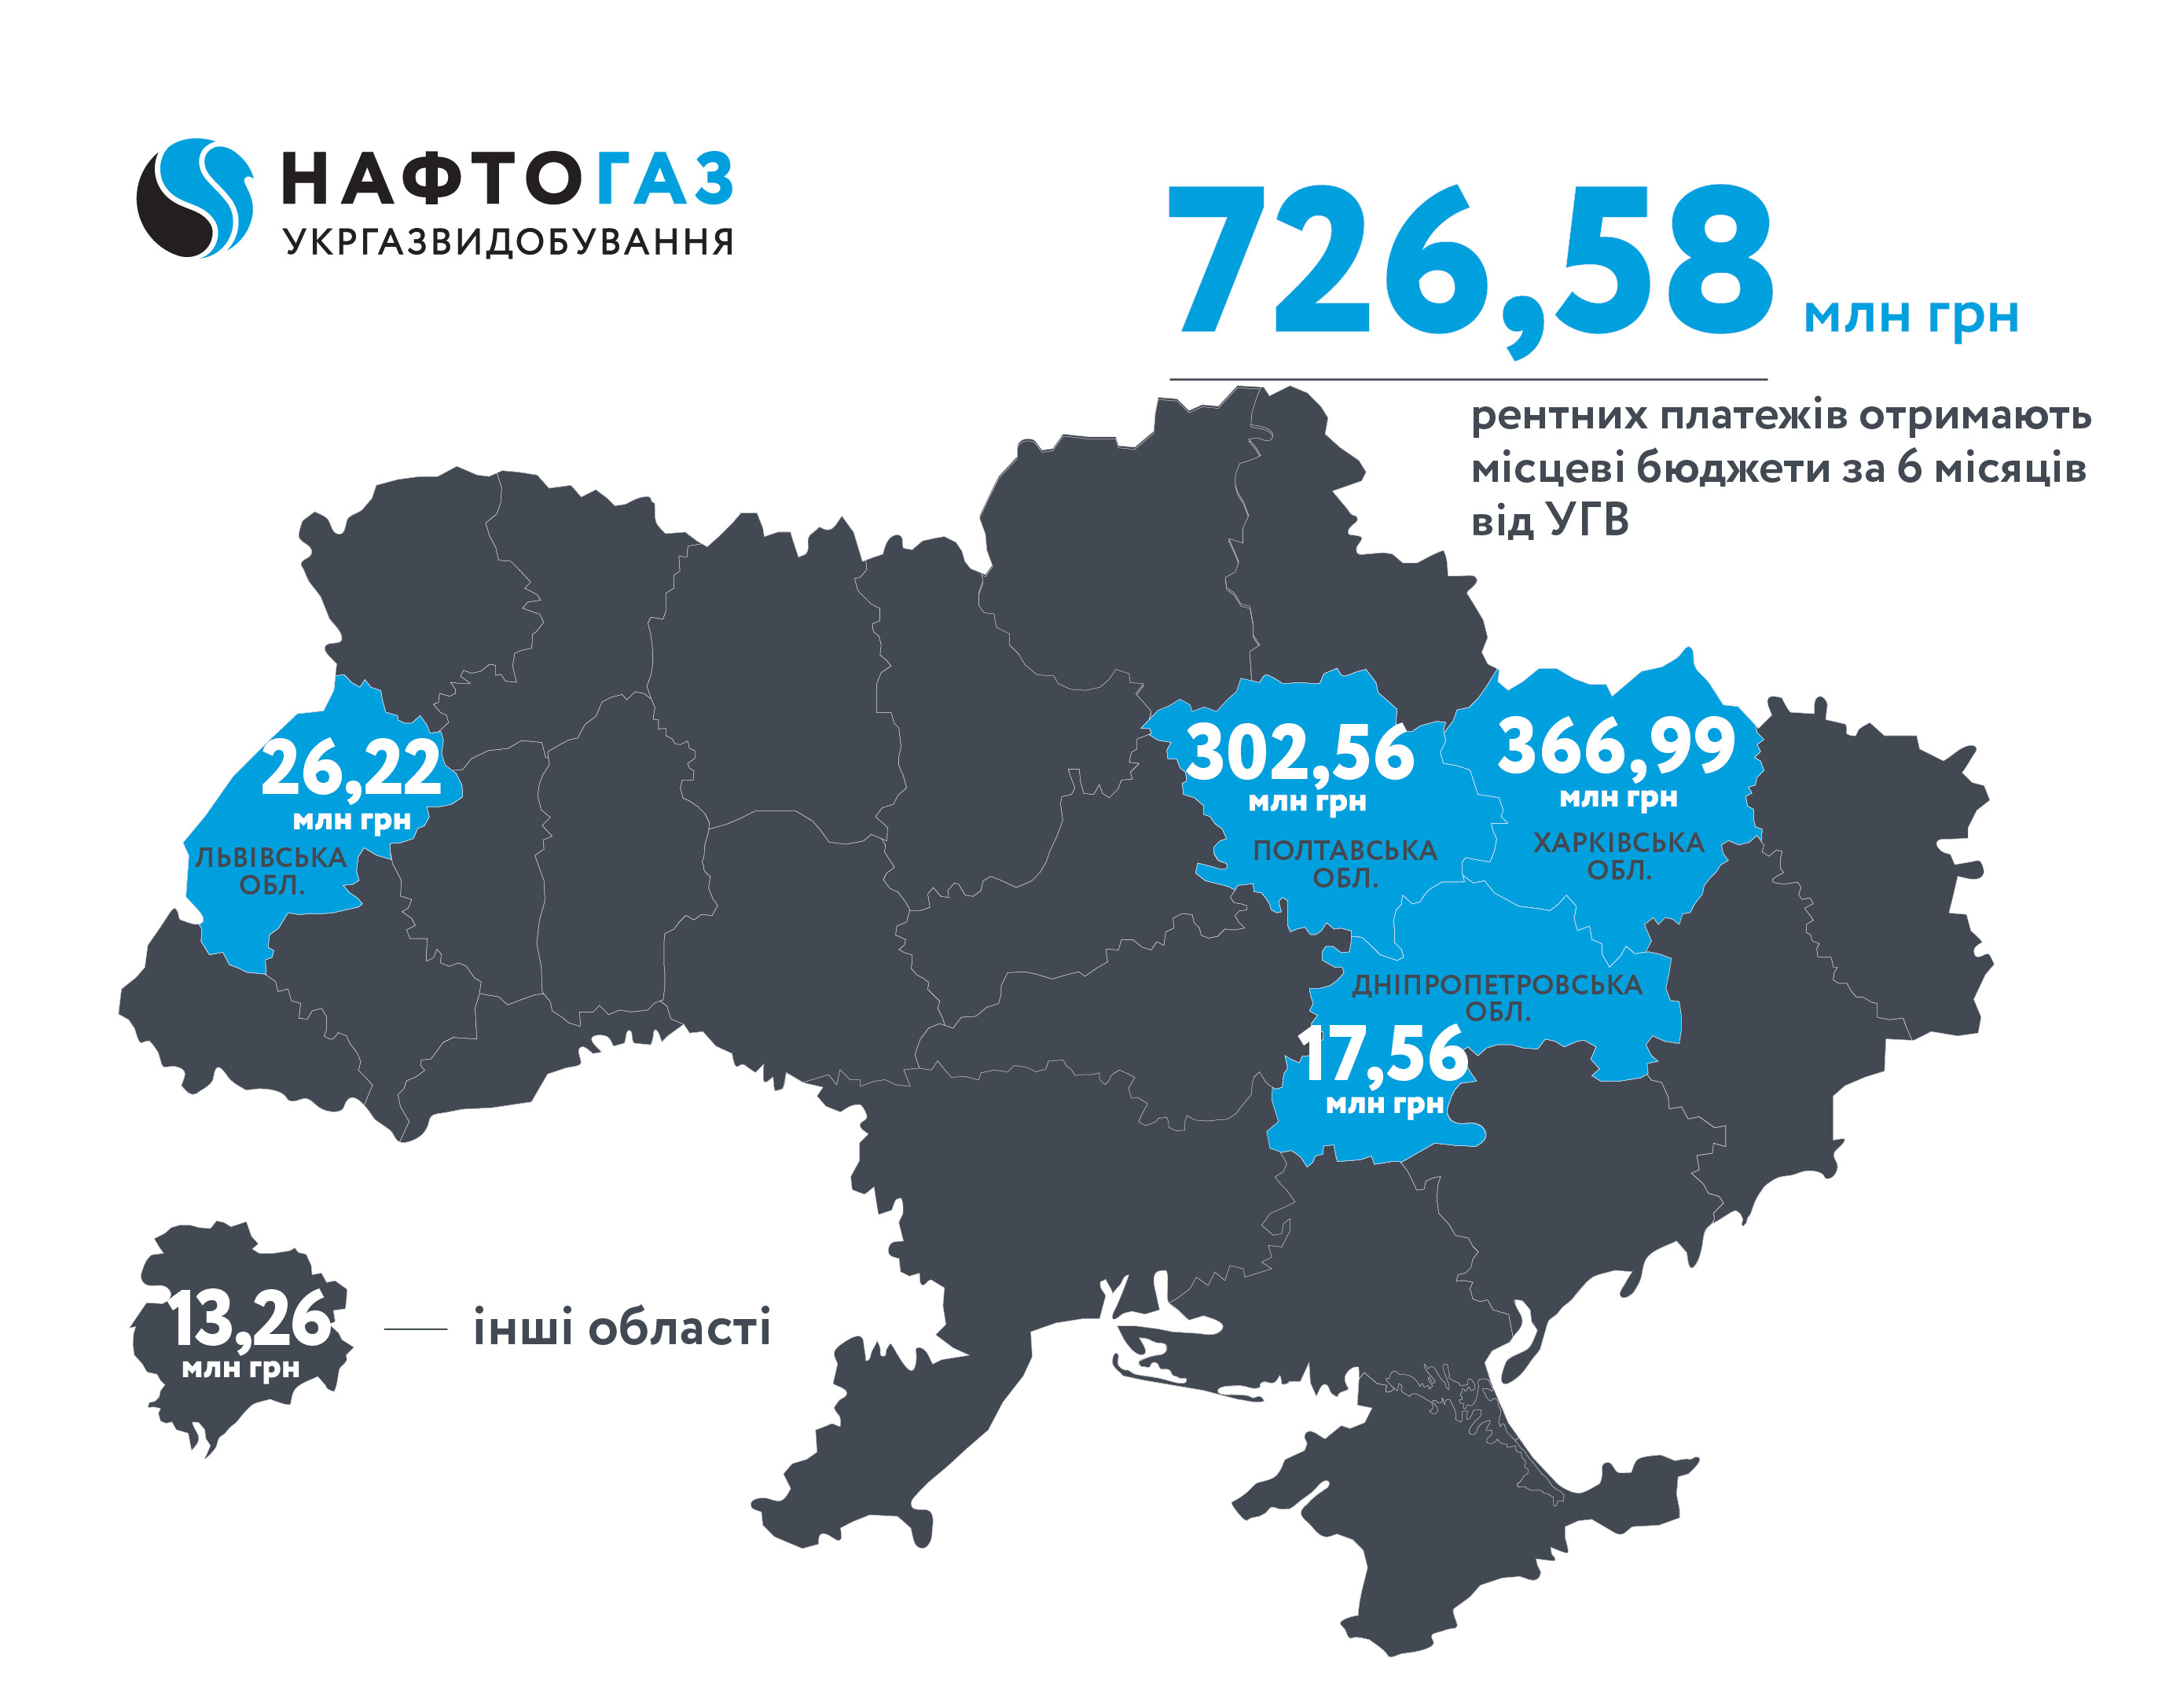 Ukrgasvydobuvannya transferred more than UAH 726 mln of rent payments to local budgets for 6 months of 2019